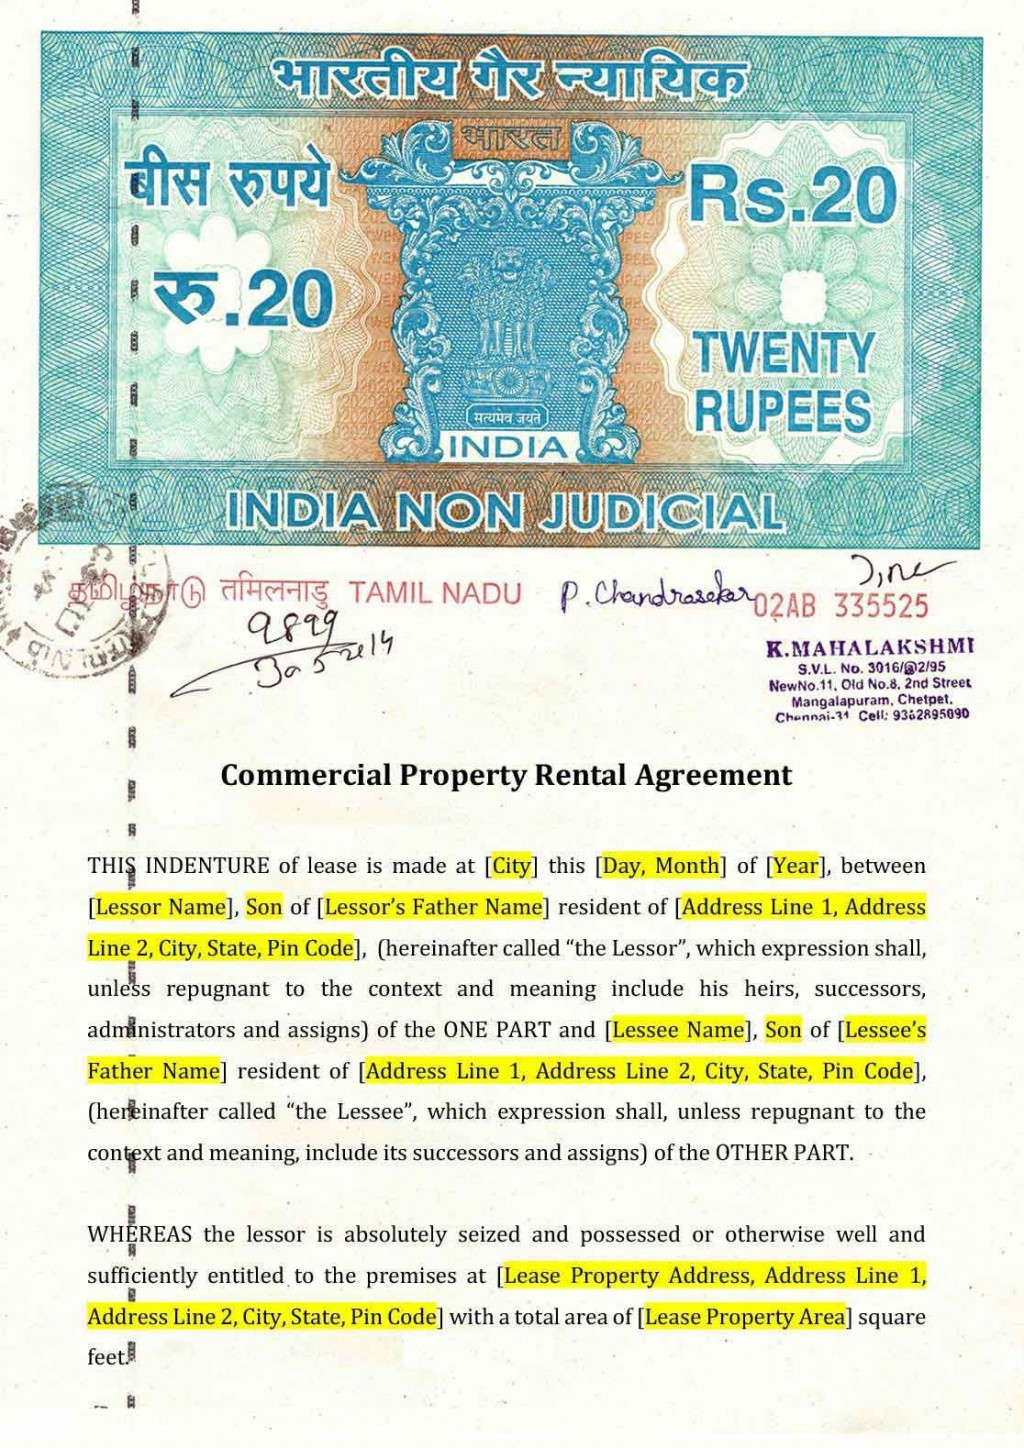 009 Formidable Lease Agreement Template Word India Inspiration  RentalLarge